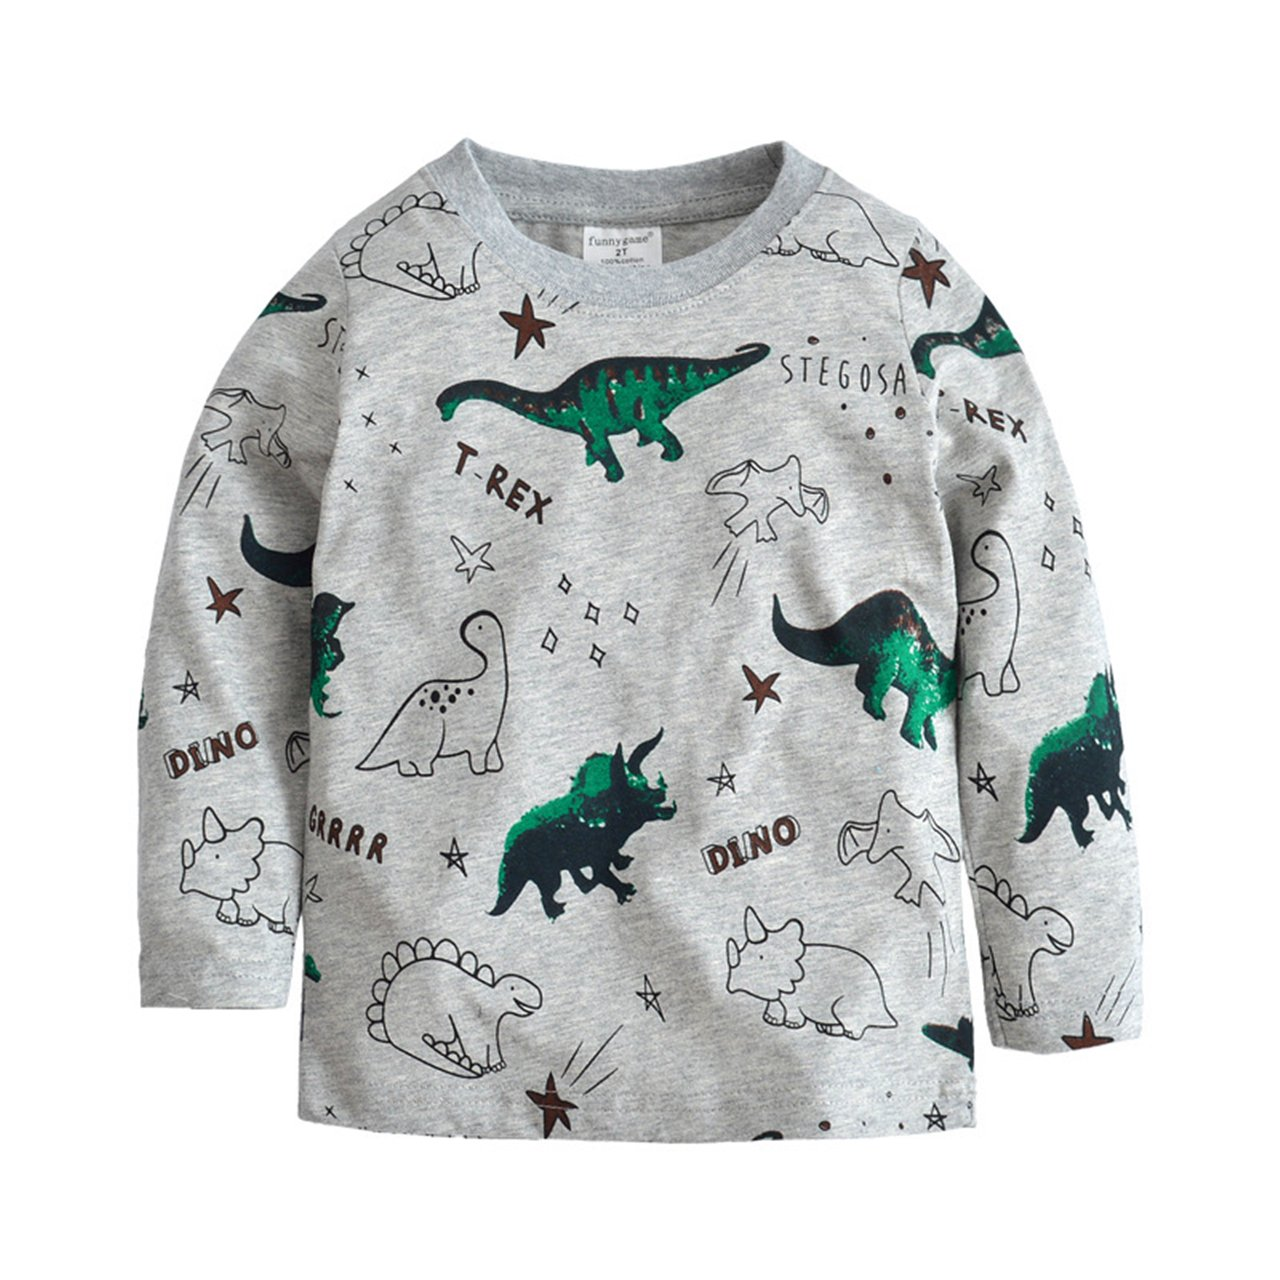 Toddler Boys' Long Sleeve T-Shirts Dinosaur Cotton Tops Tee Kids Size 2 3 4 5 6 7 T